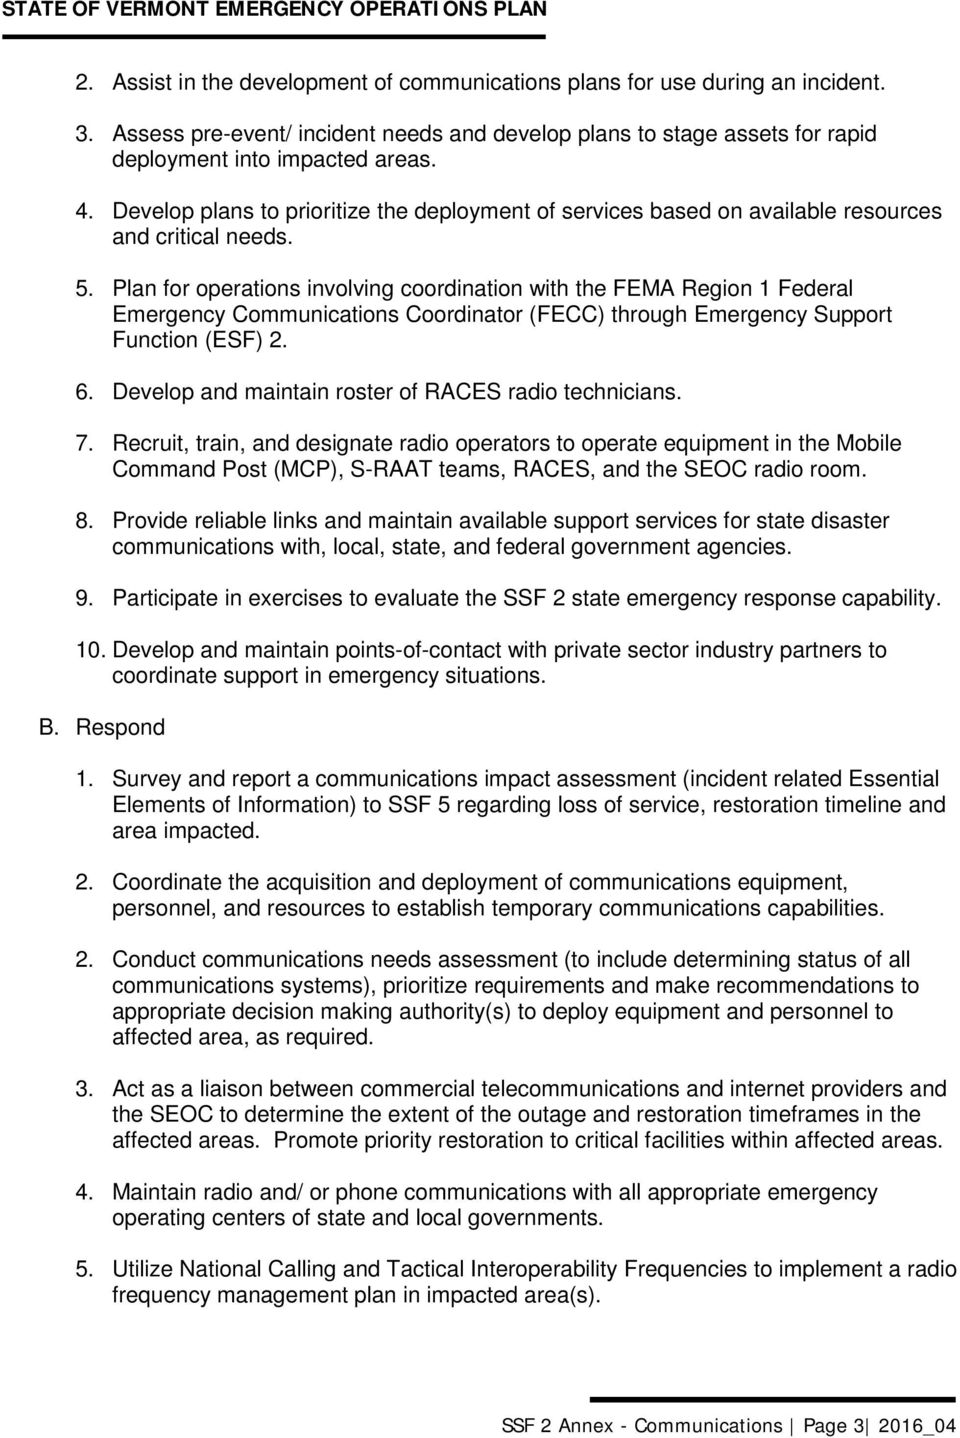 Plan for operations involving coordination with the FEMA Region 1 Federal Emergency Communications Coordinator (FECC) through Emergency Support Function (ESF) 2. 6.